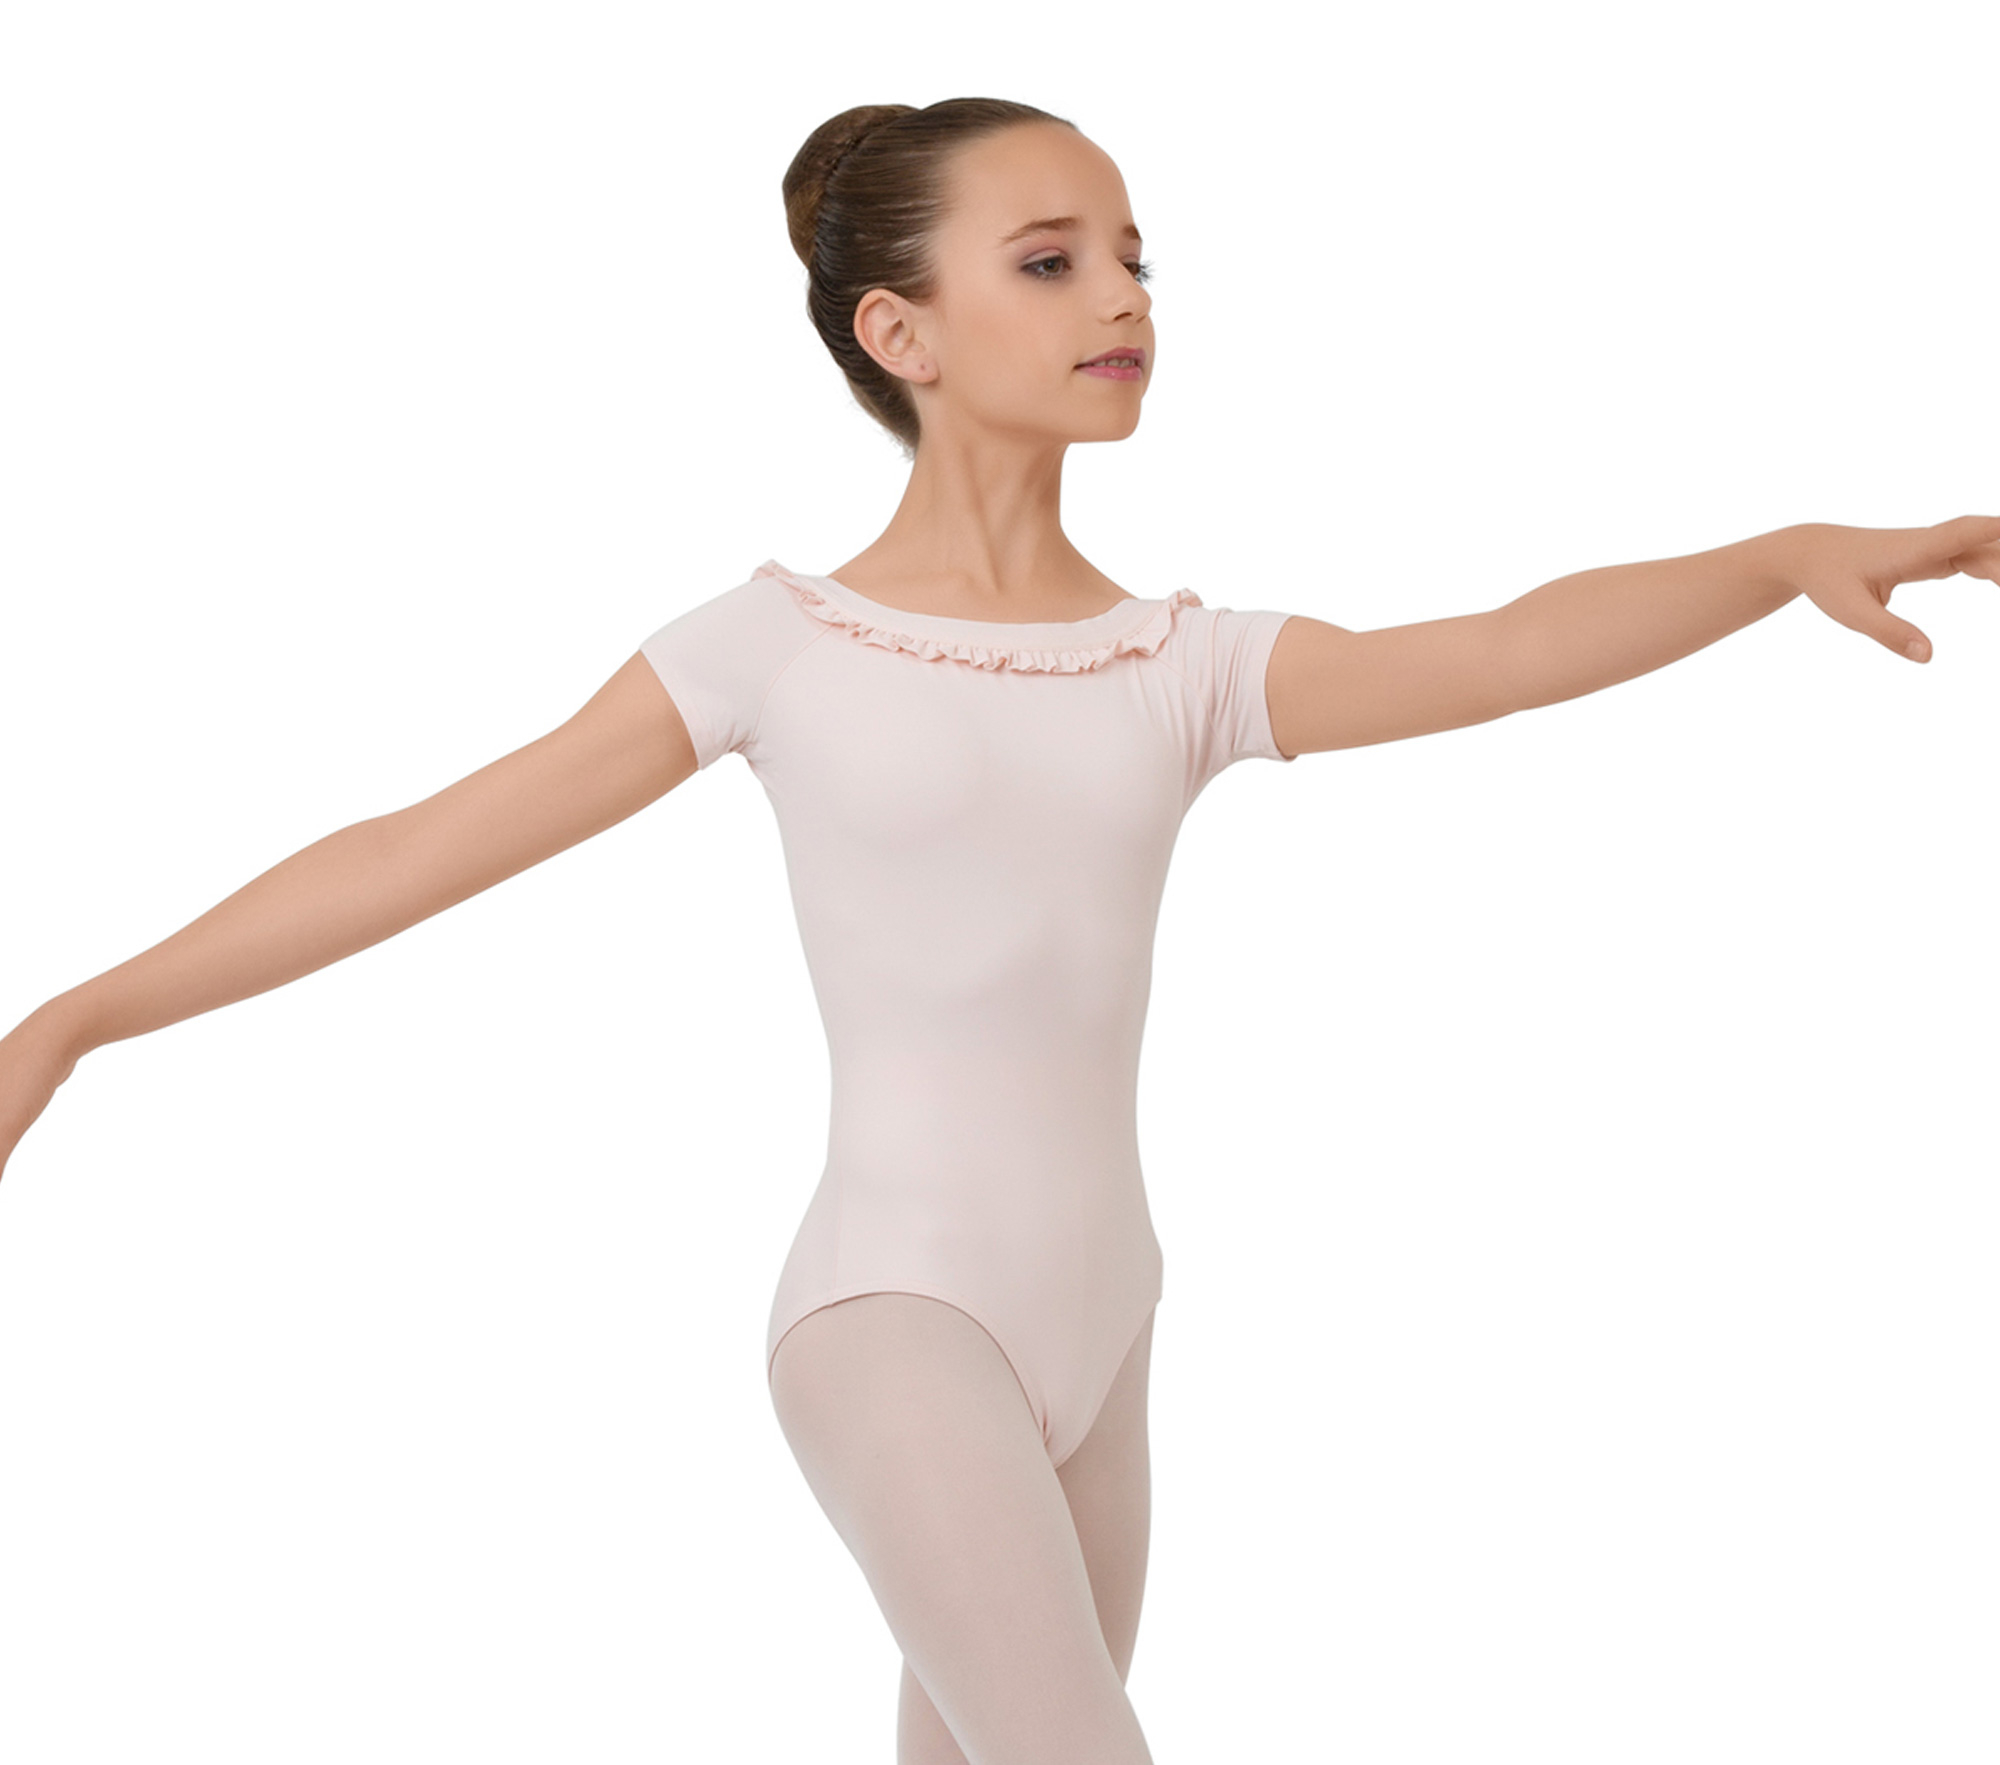 Short sleeved leotard